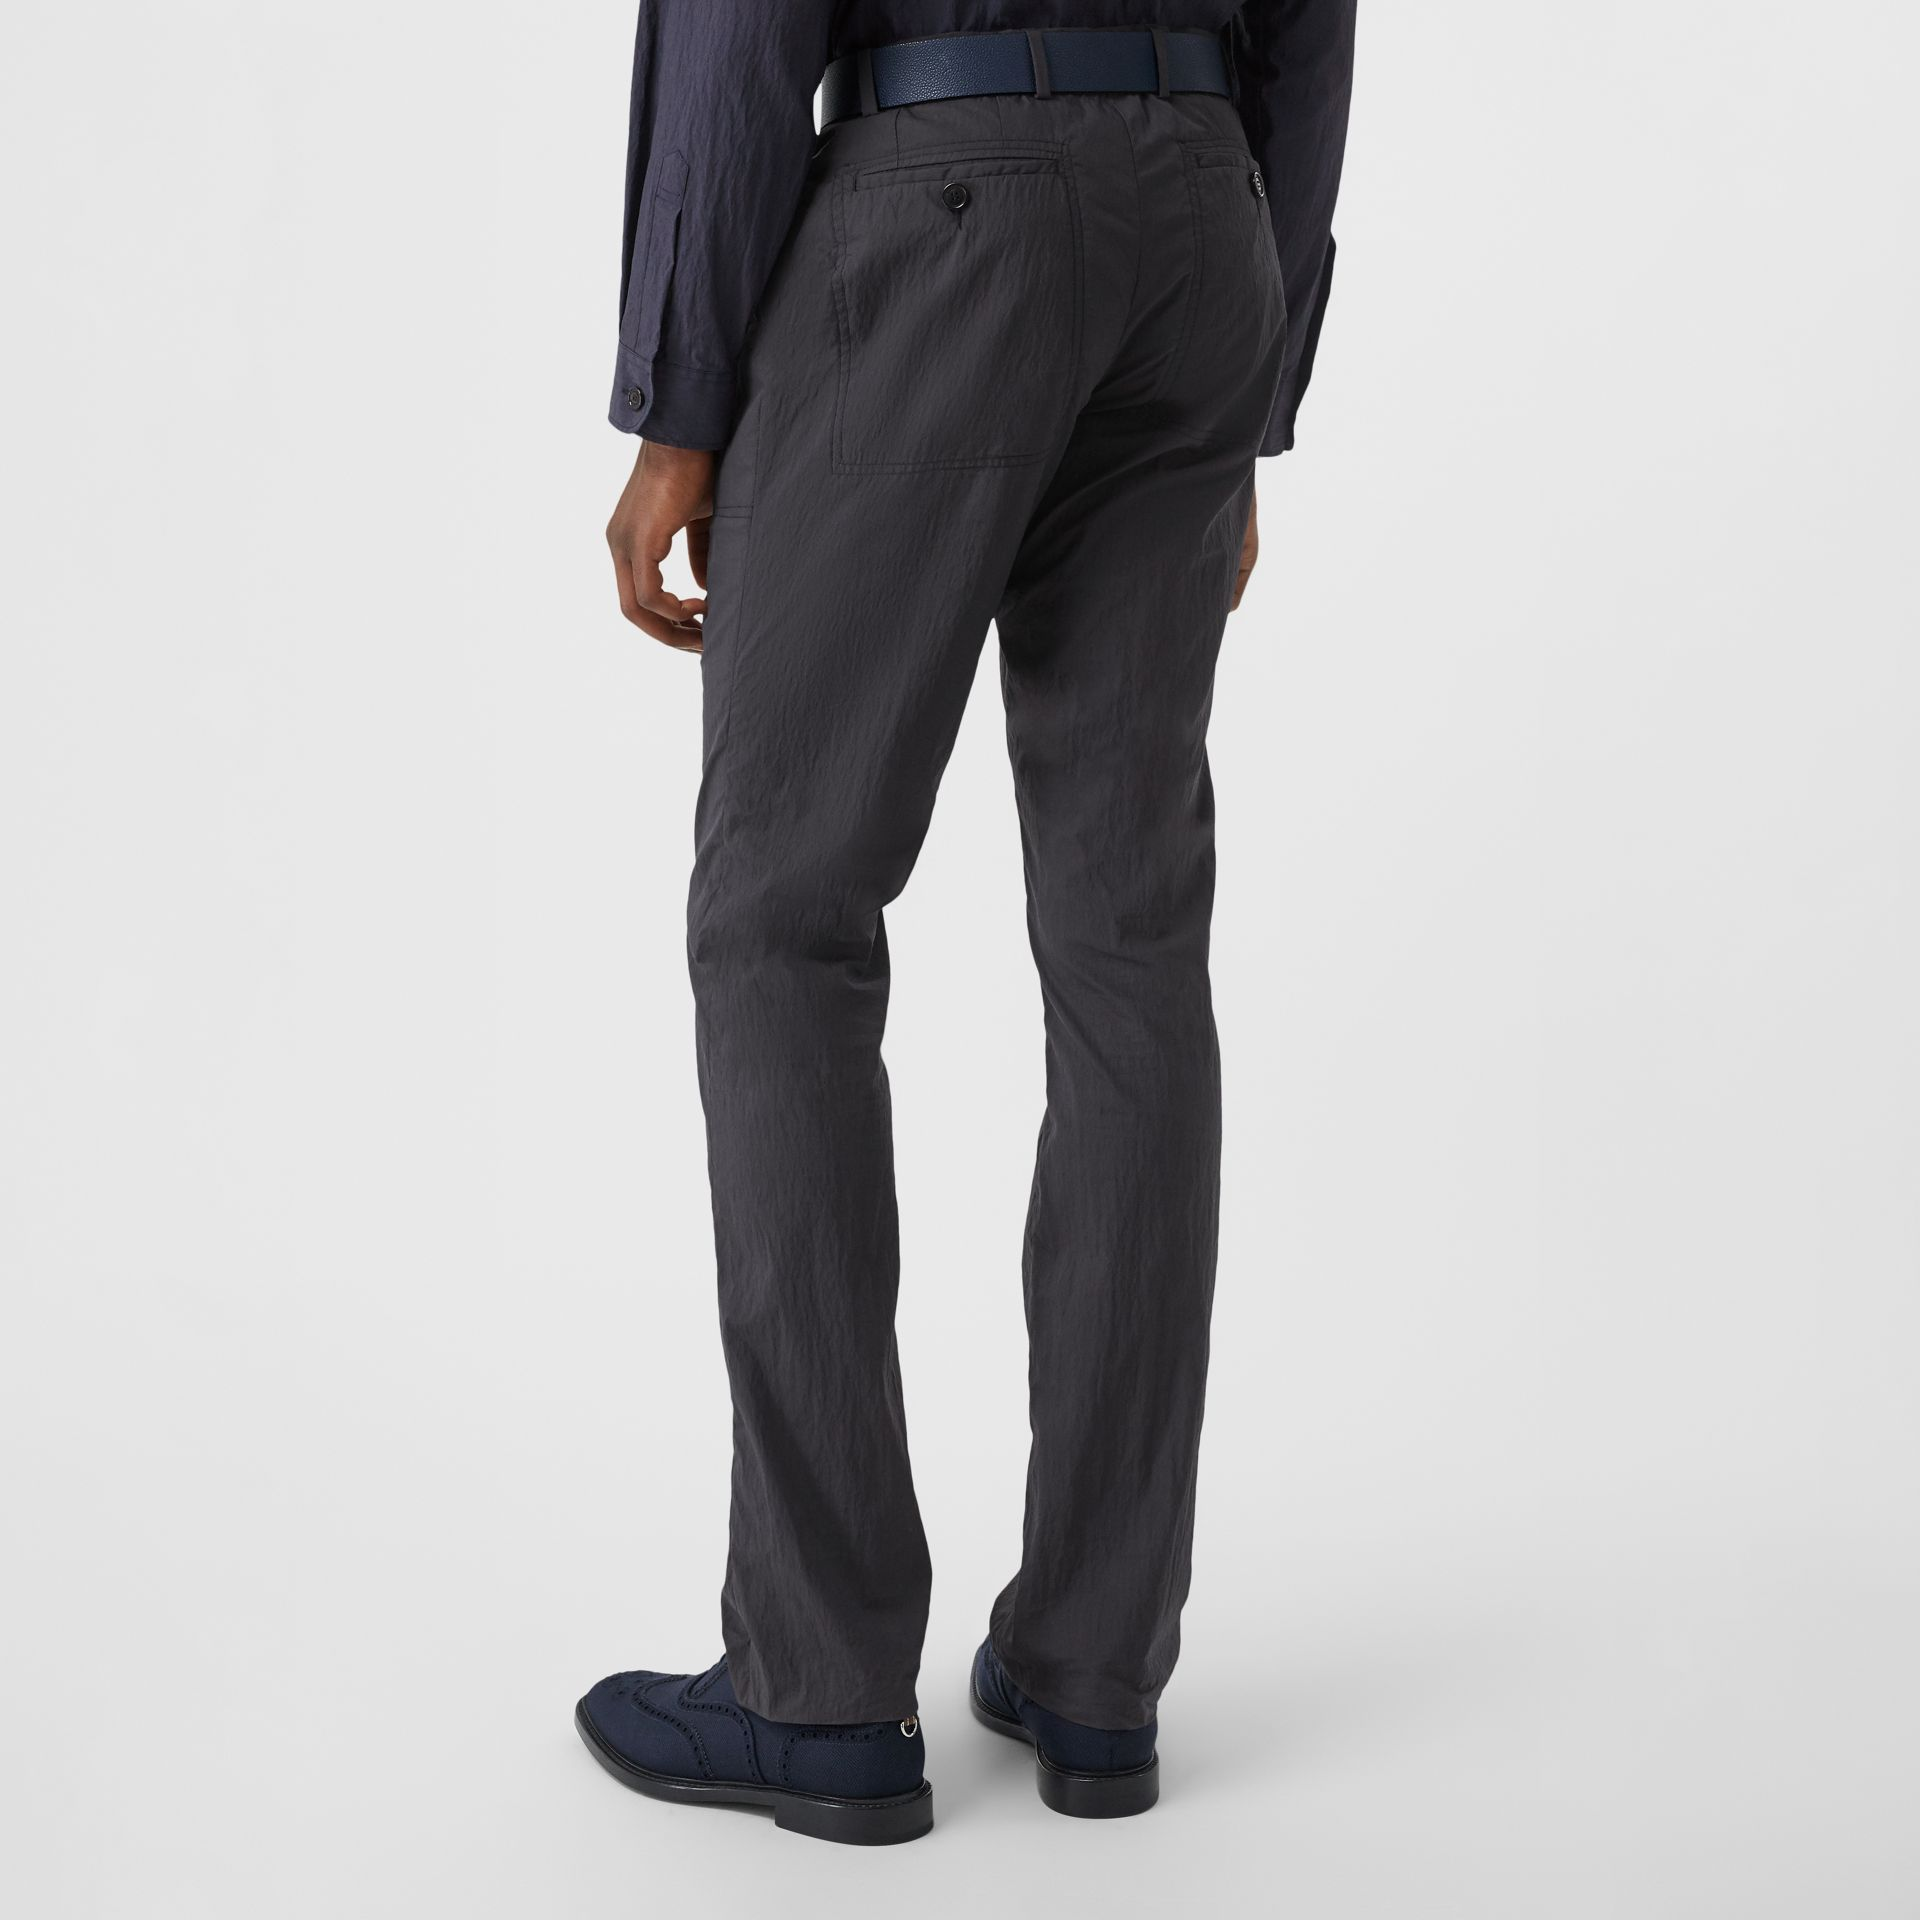 Classic Fit Cotton Blend Tailored Trousers in Navy - Men | Burberry Australia - gallery image 2